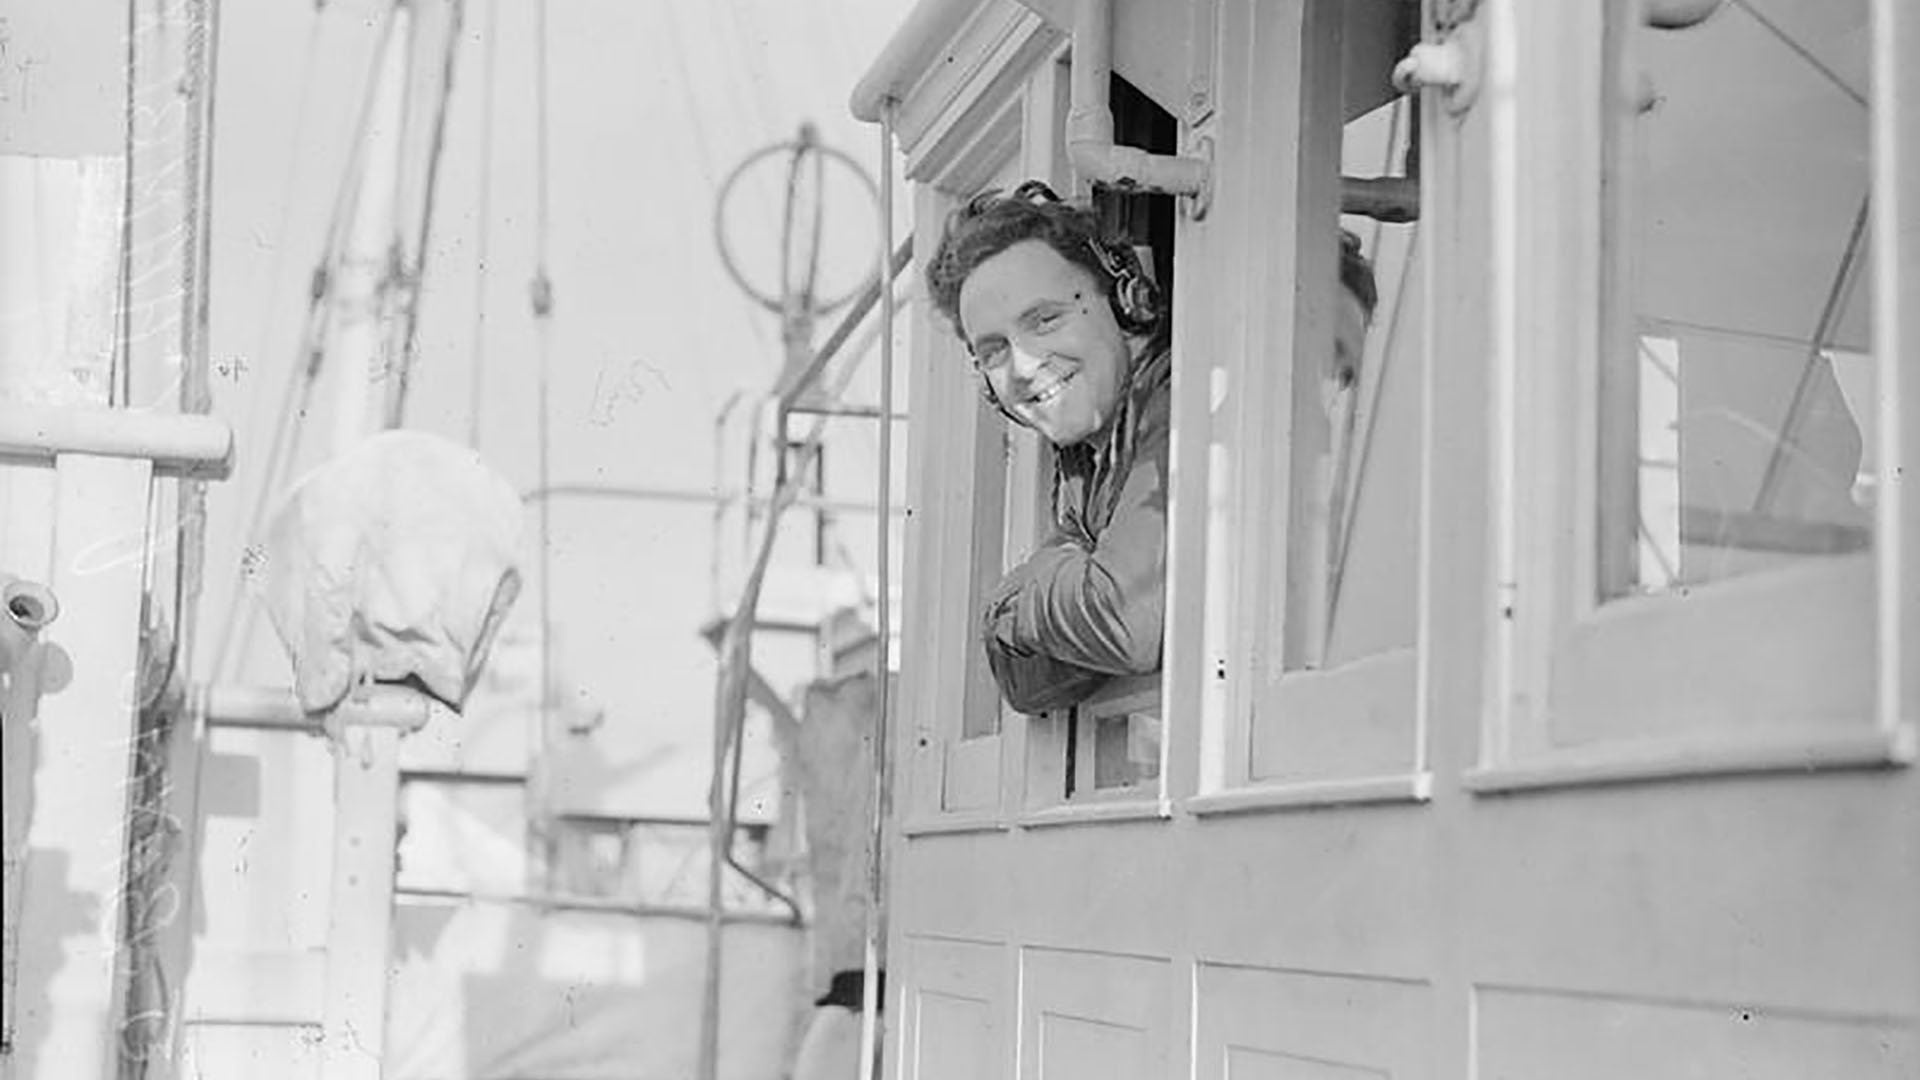 Leading Seaman J Bayne on the HMCS Chambly in Londonderry Port